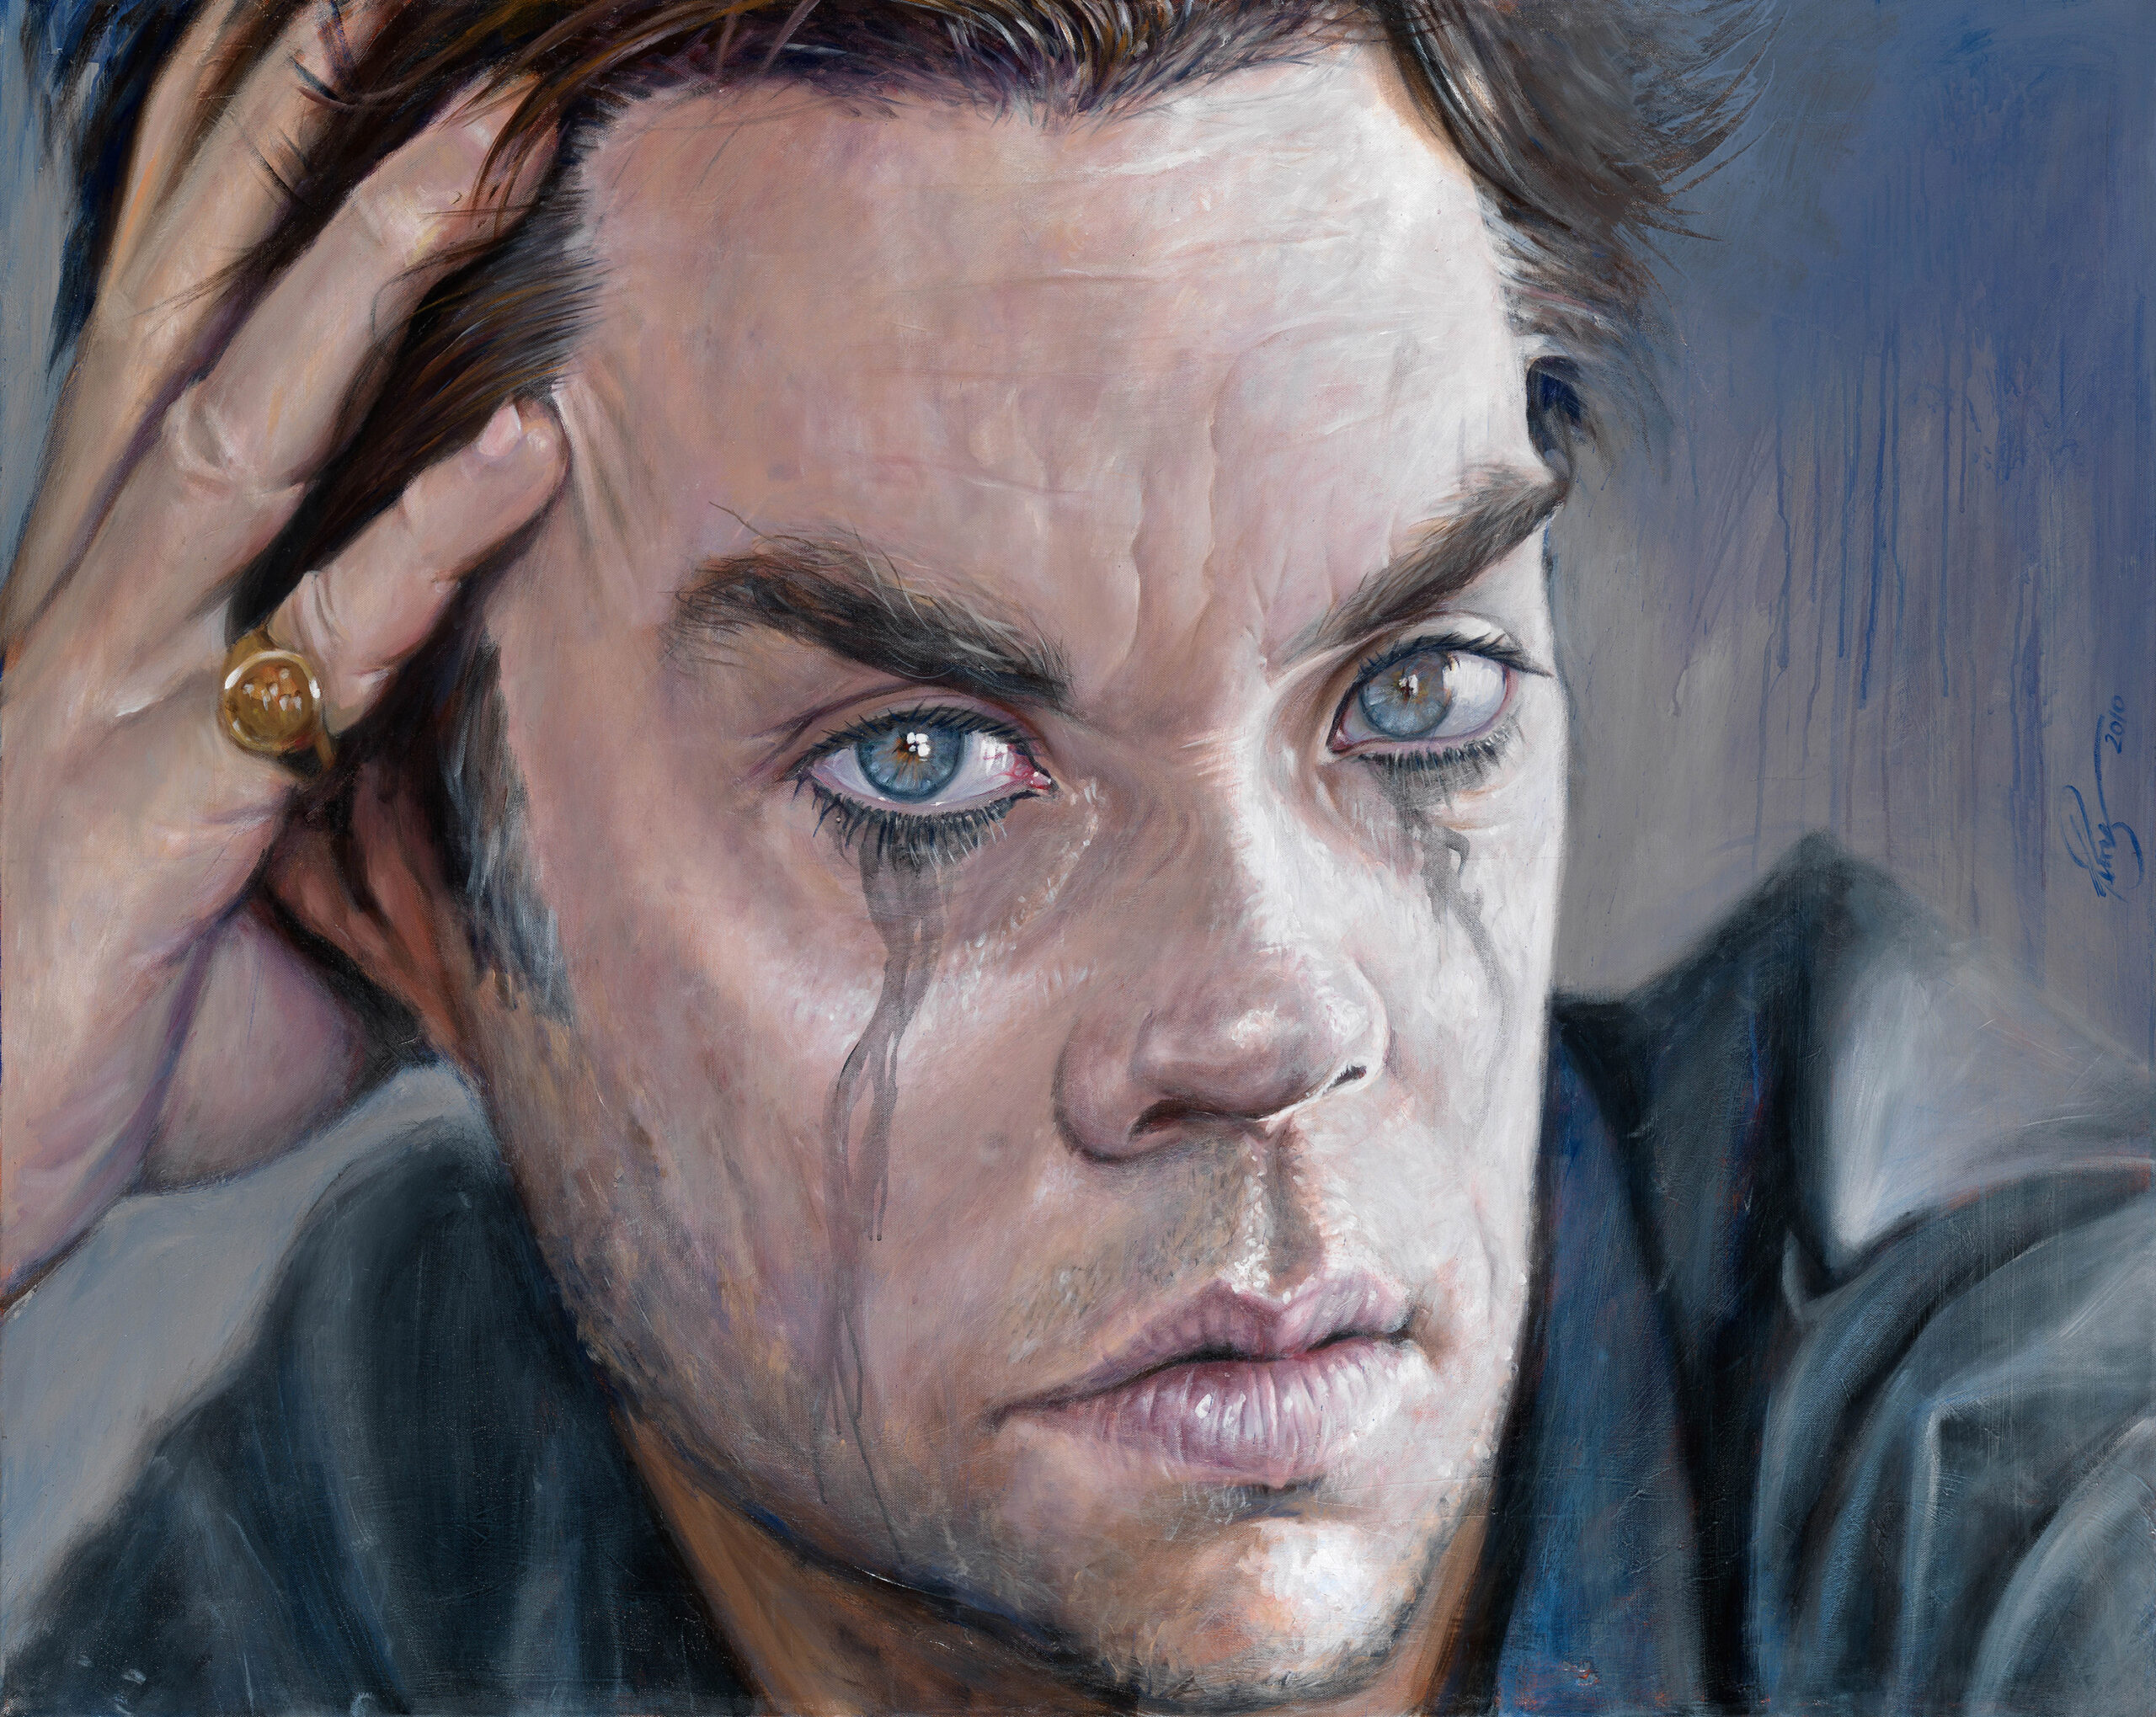 Rufus Wainwright portrait by Derren Brown